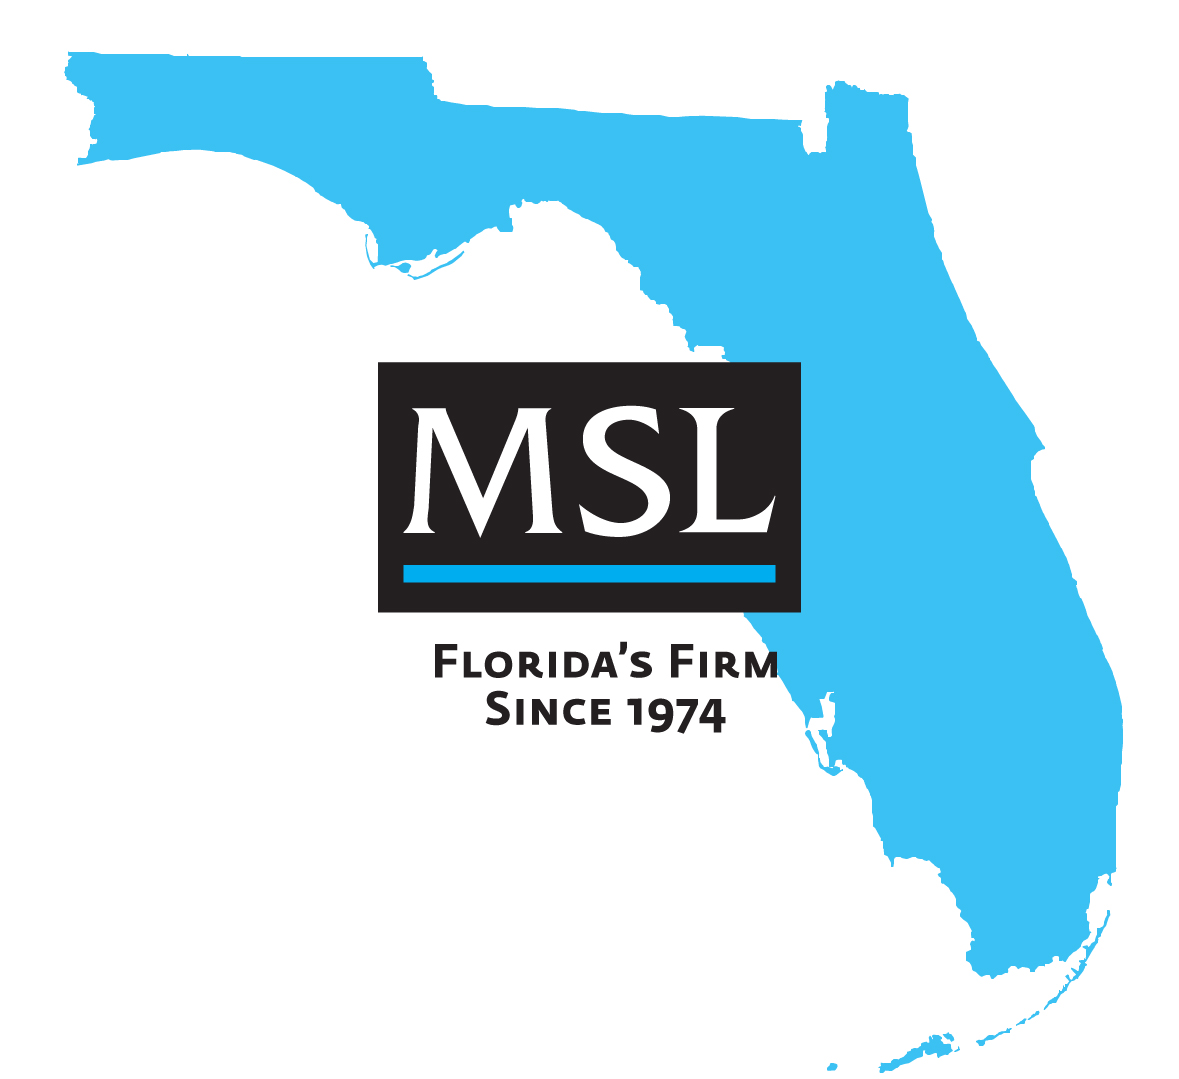 MSL FLORIDA'S FIRM